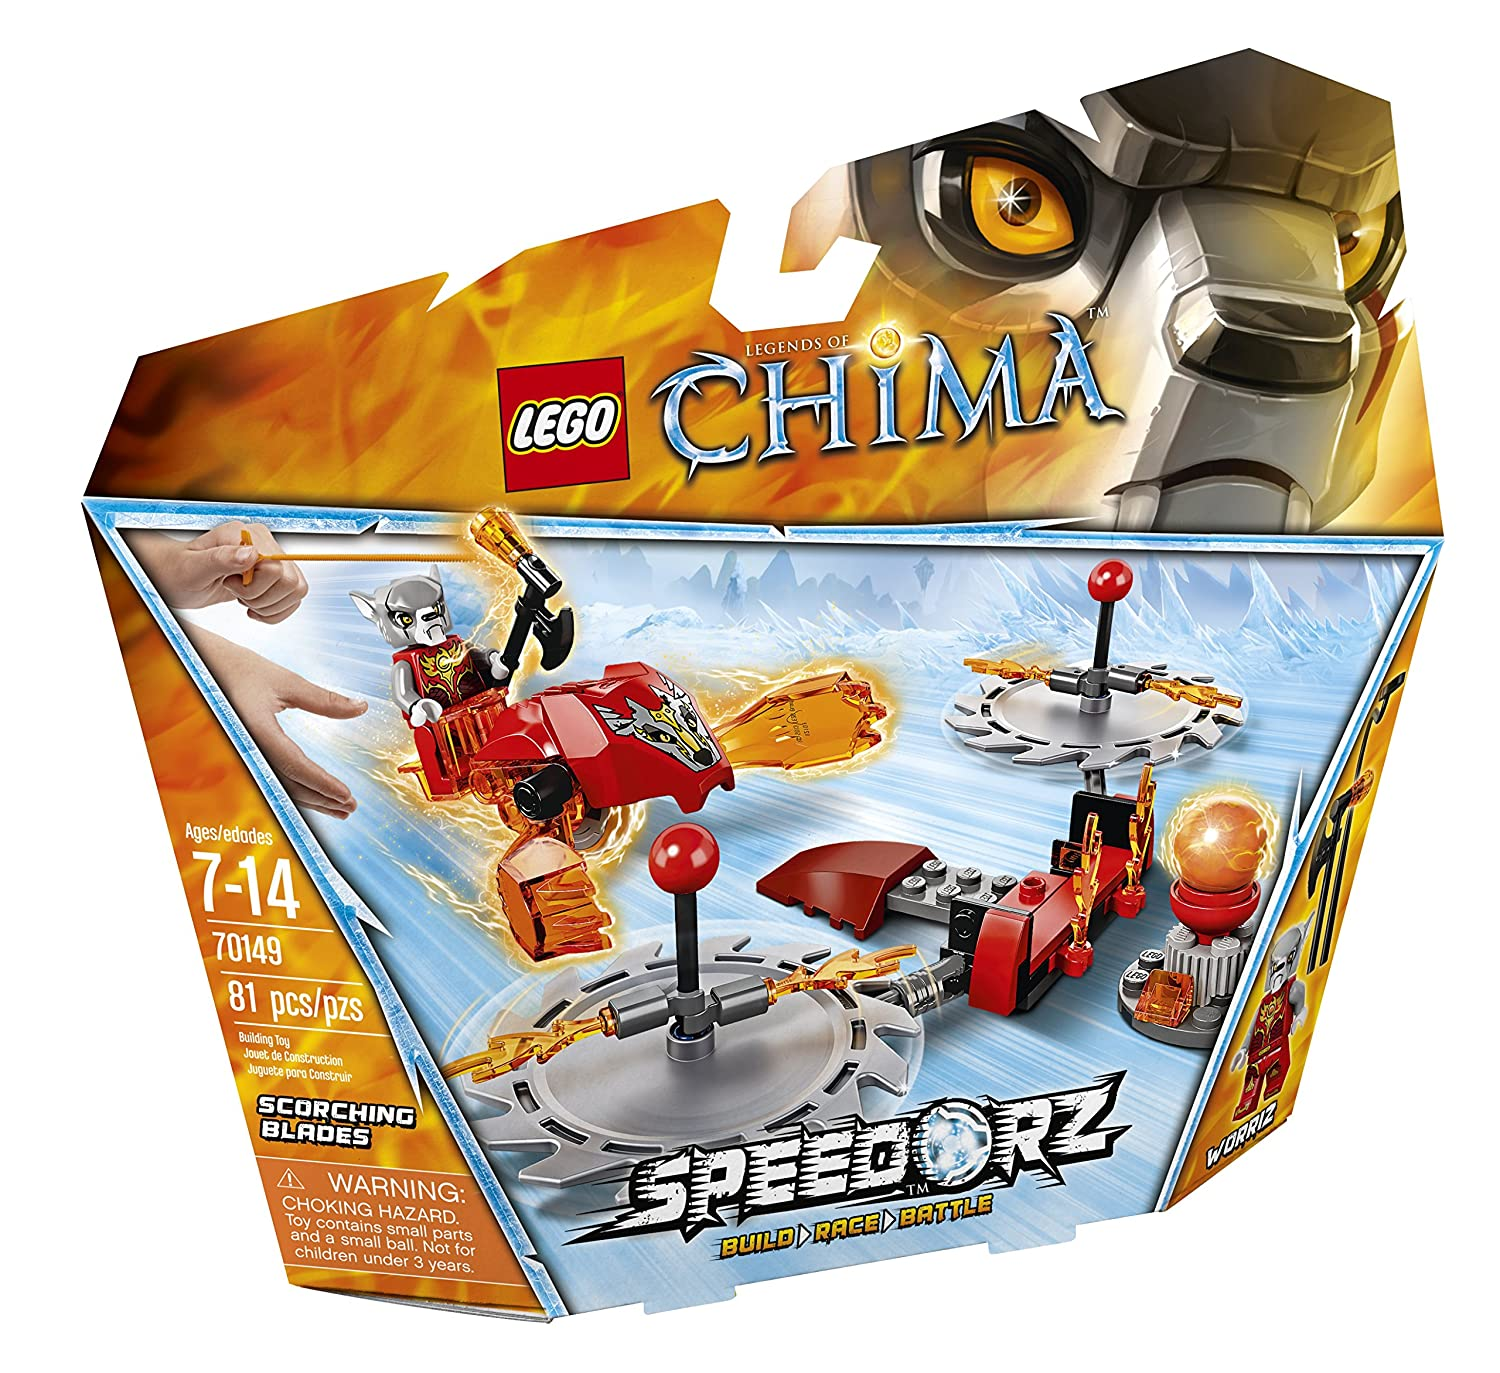 Amazon chima party supplies - Amazon Com Lego Chima 70149 Scorching Blades Building Toy Toys Games